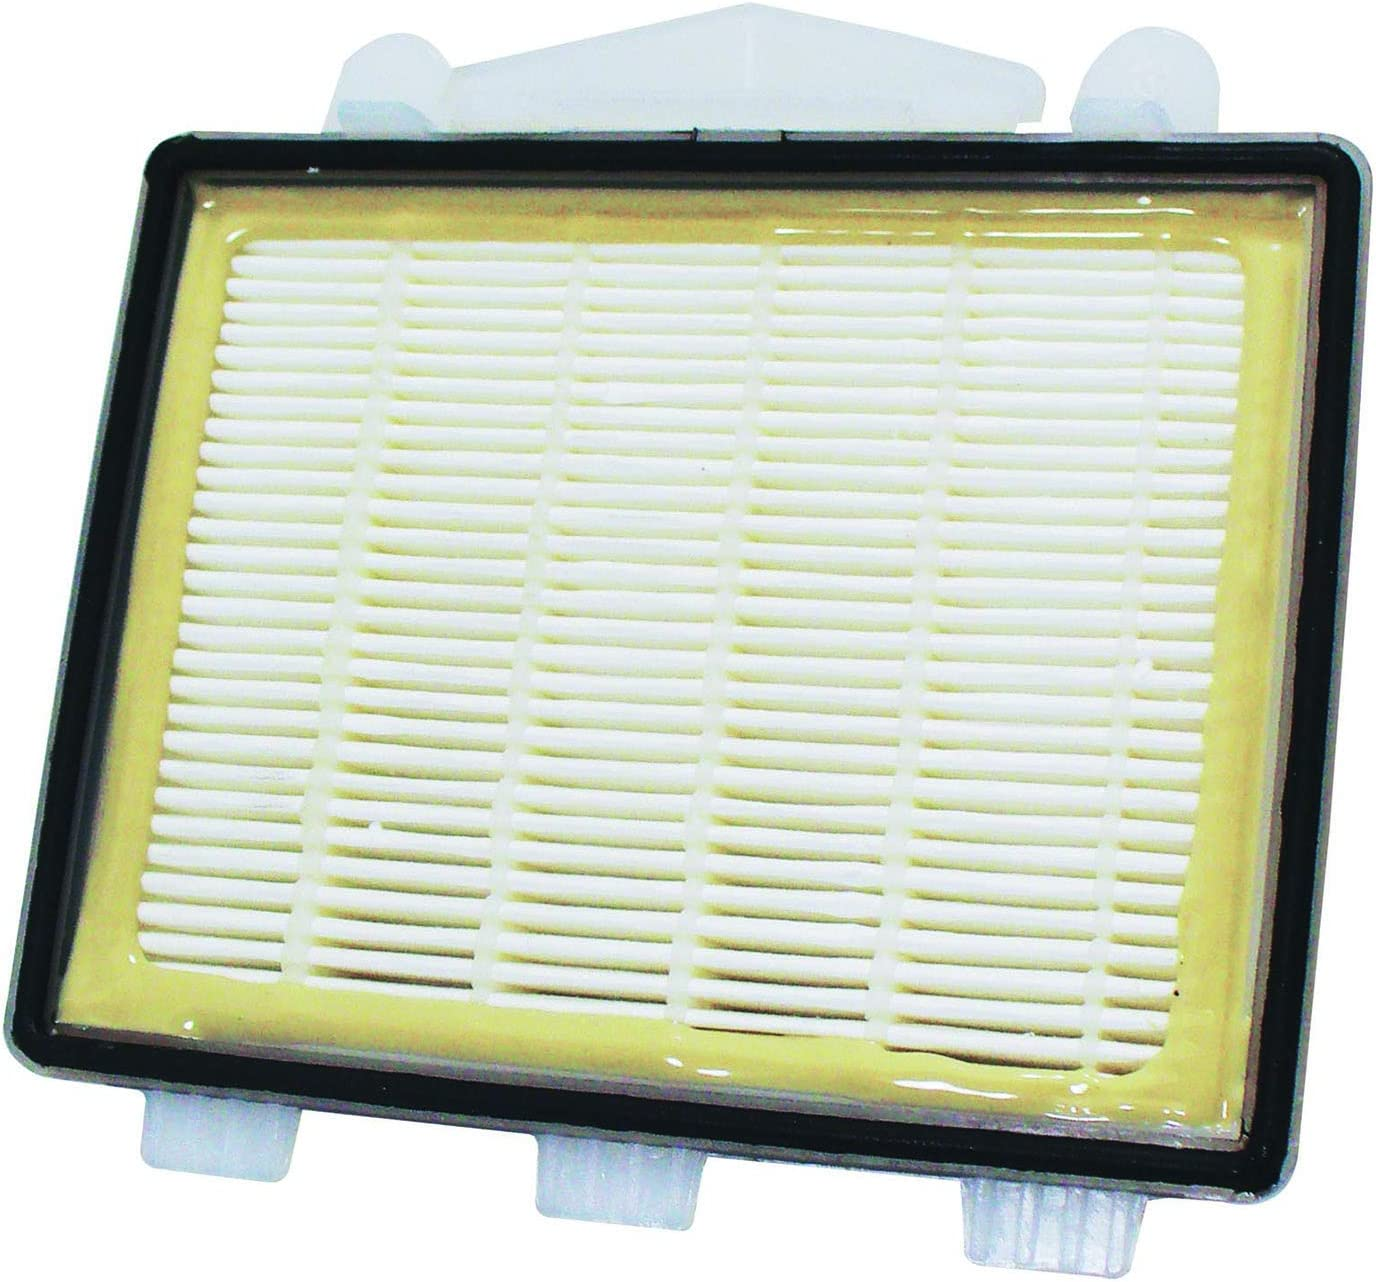 Janitized JAN-IVF459 Premium Replacement Commercial HEPA Filter, Karcher/Tornado Models CV30/1, CV38/1 and CV48/2